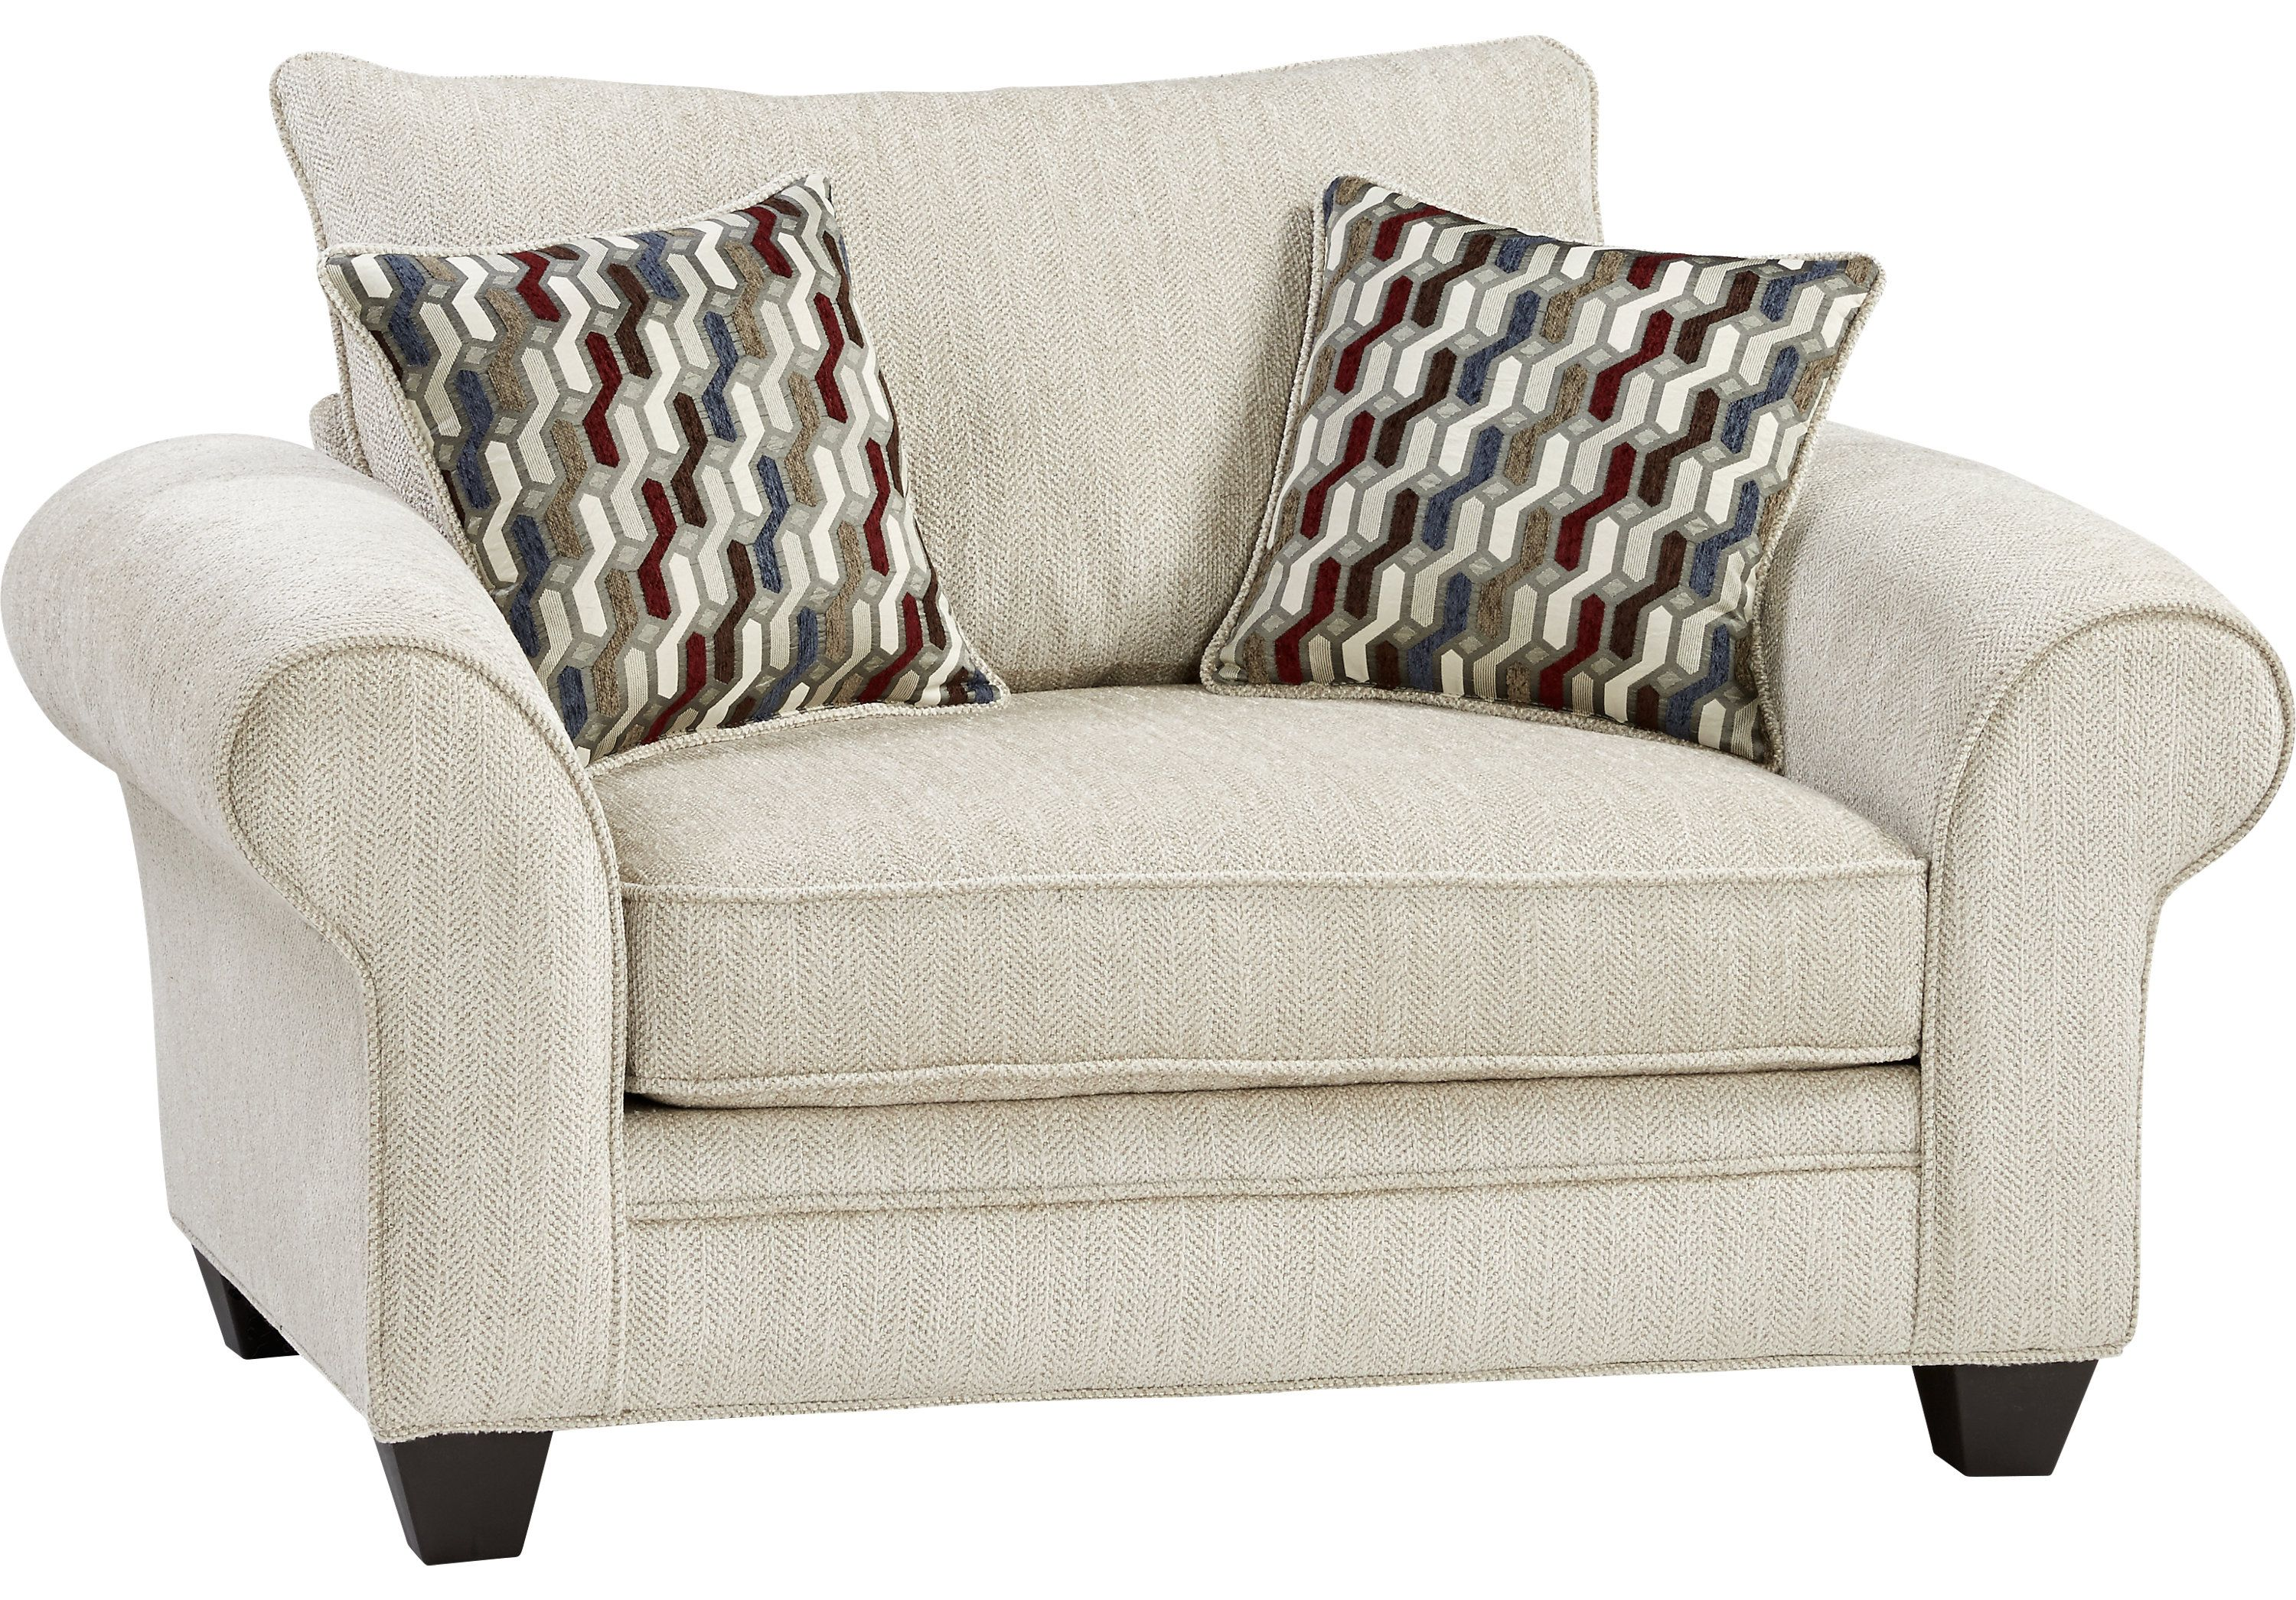 Chesapeake beige chair chairs oversized chair living